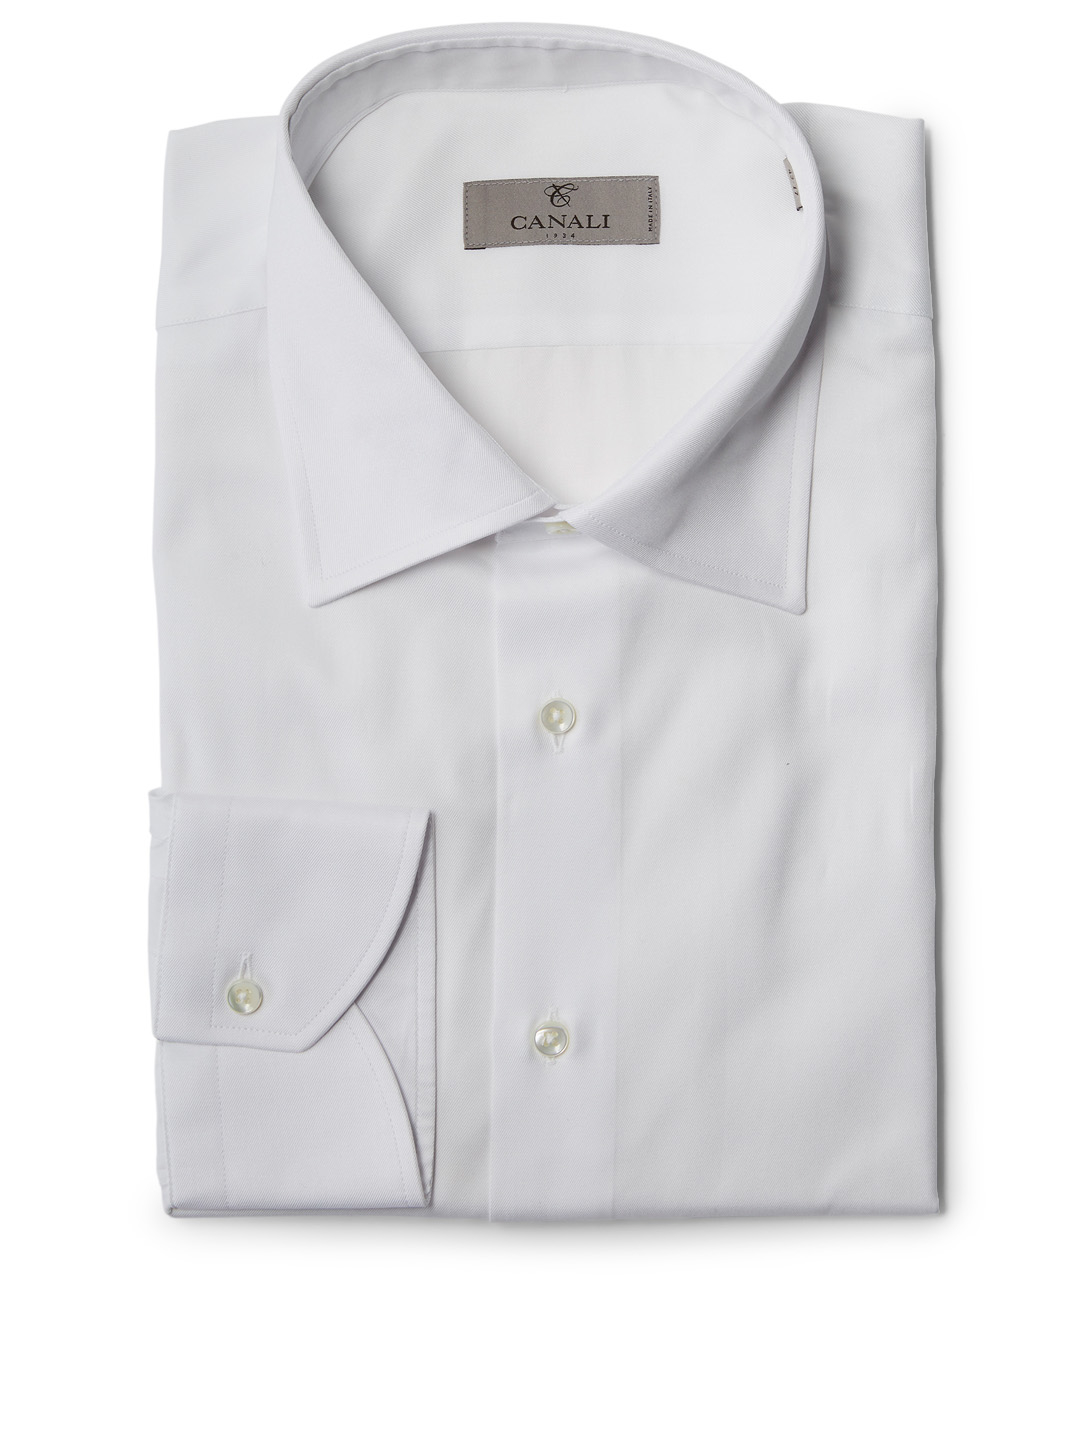 CANALI Cotton Dress Shirt Men's White